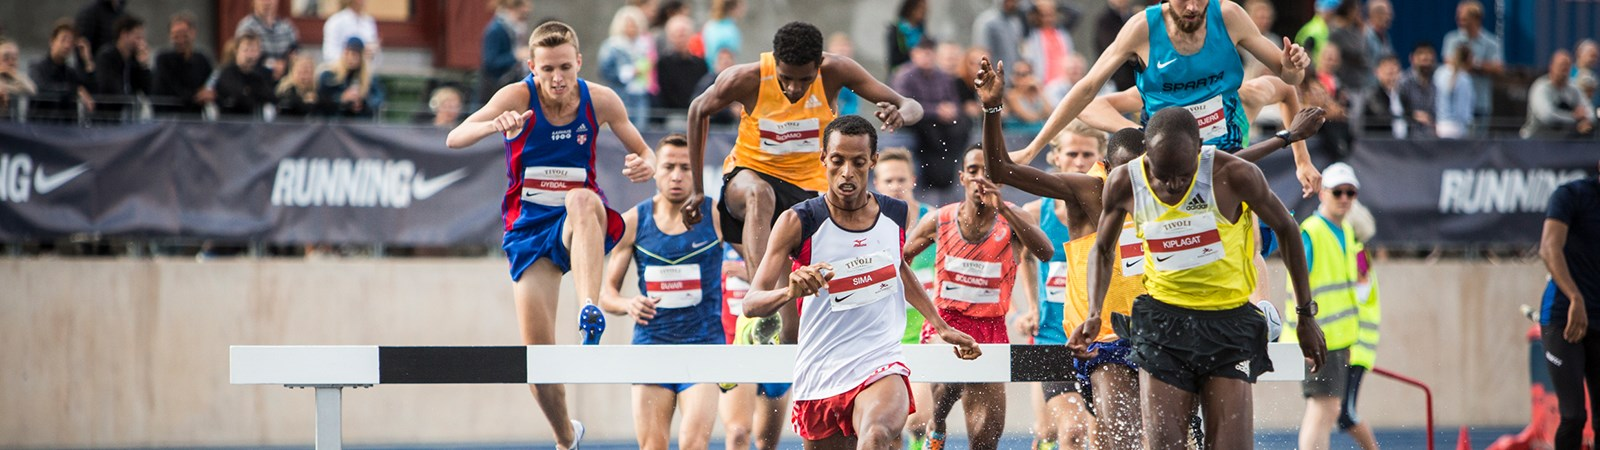 Copenhagen Athletics Games – atletik på højt internationalt niveau